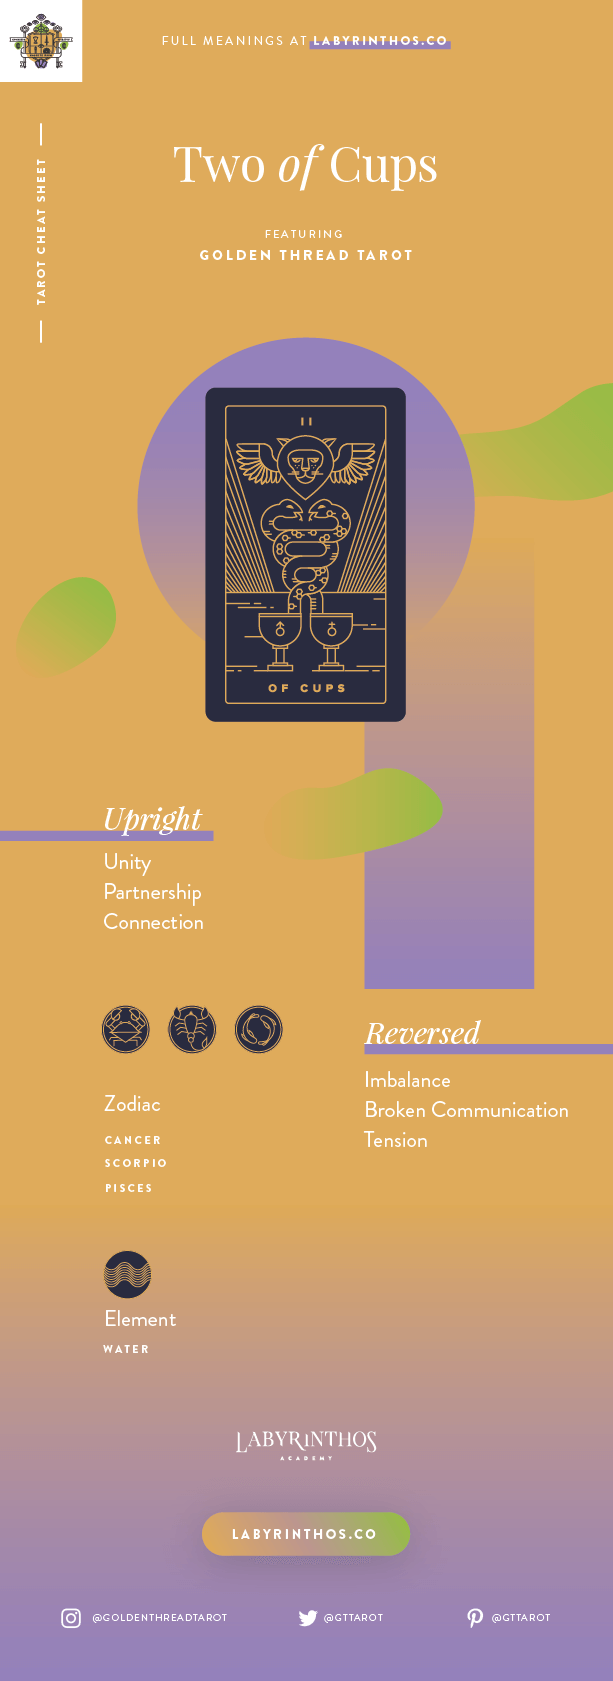 Two of Cups Meaning - Tarot Card Meanings Cheat Sheet. Art from Golden Thread Tarot.